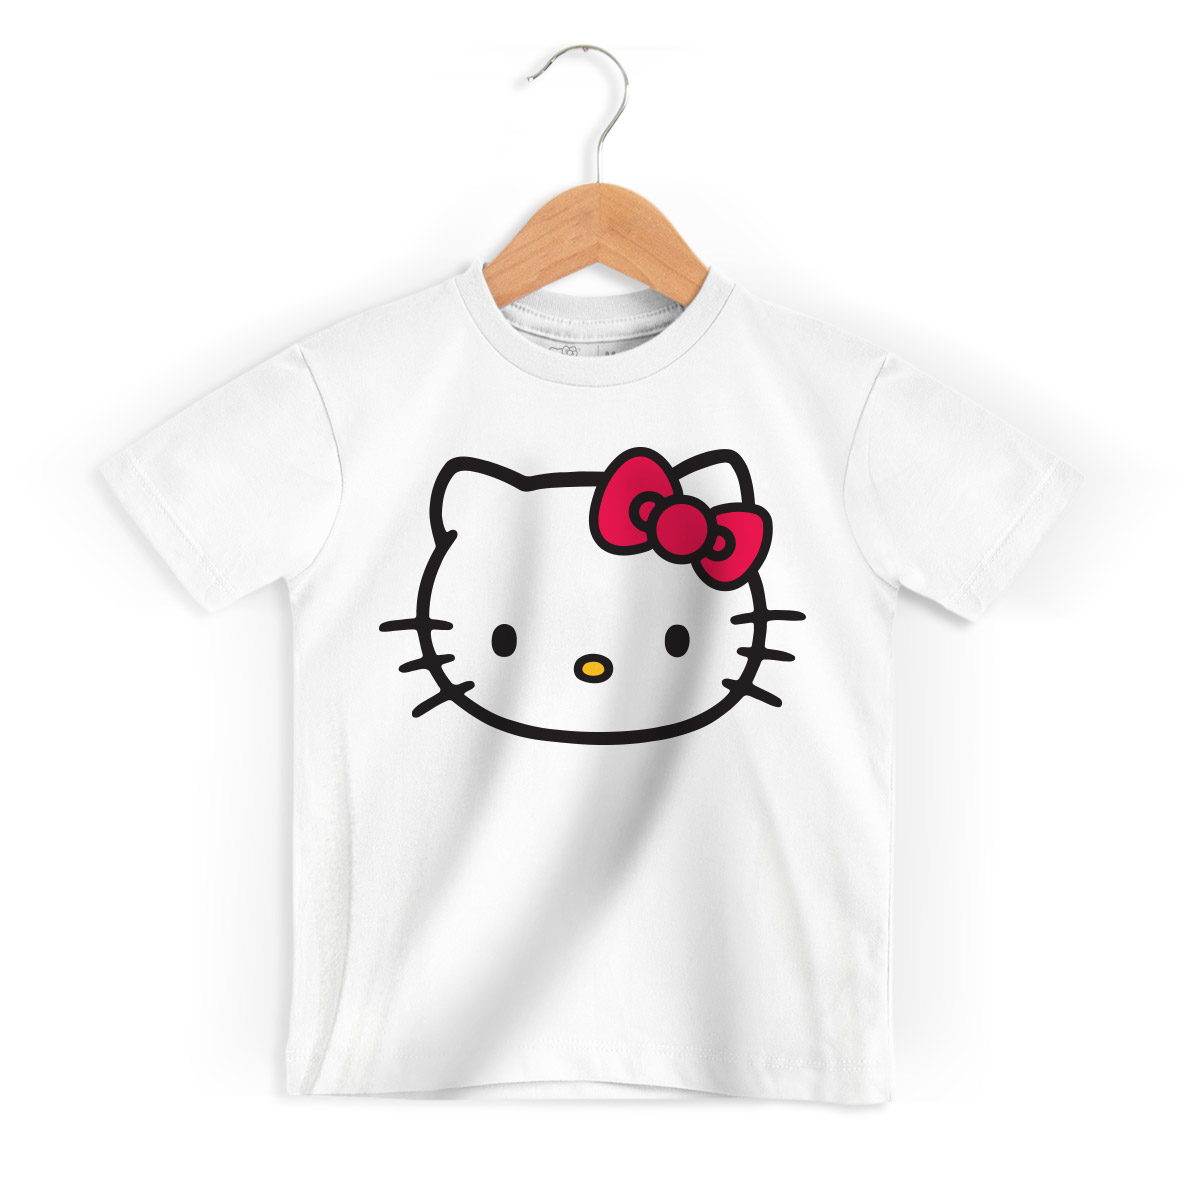 Camiseta Infantil Hello Kitty Tradicional